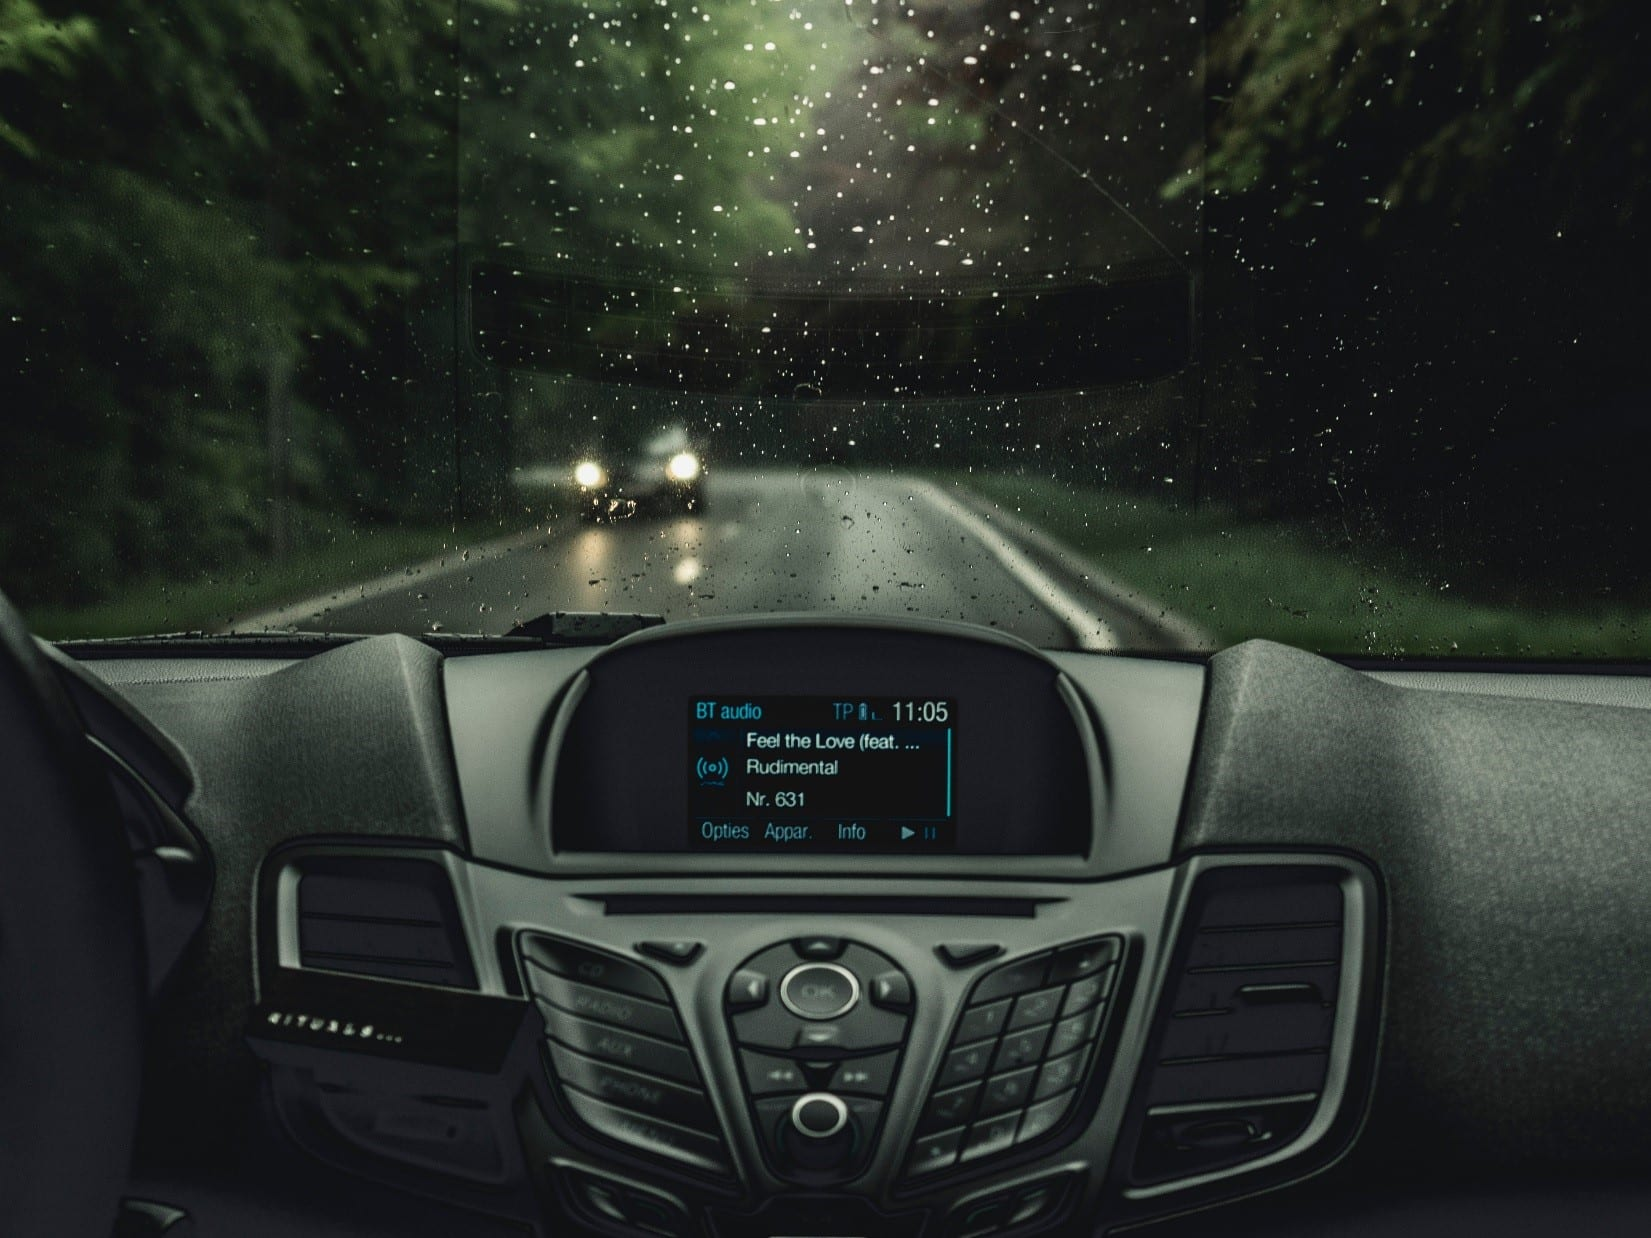 The car dashboard playing a song